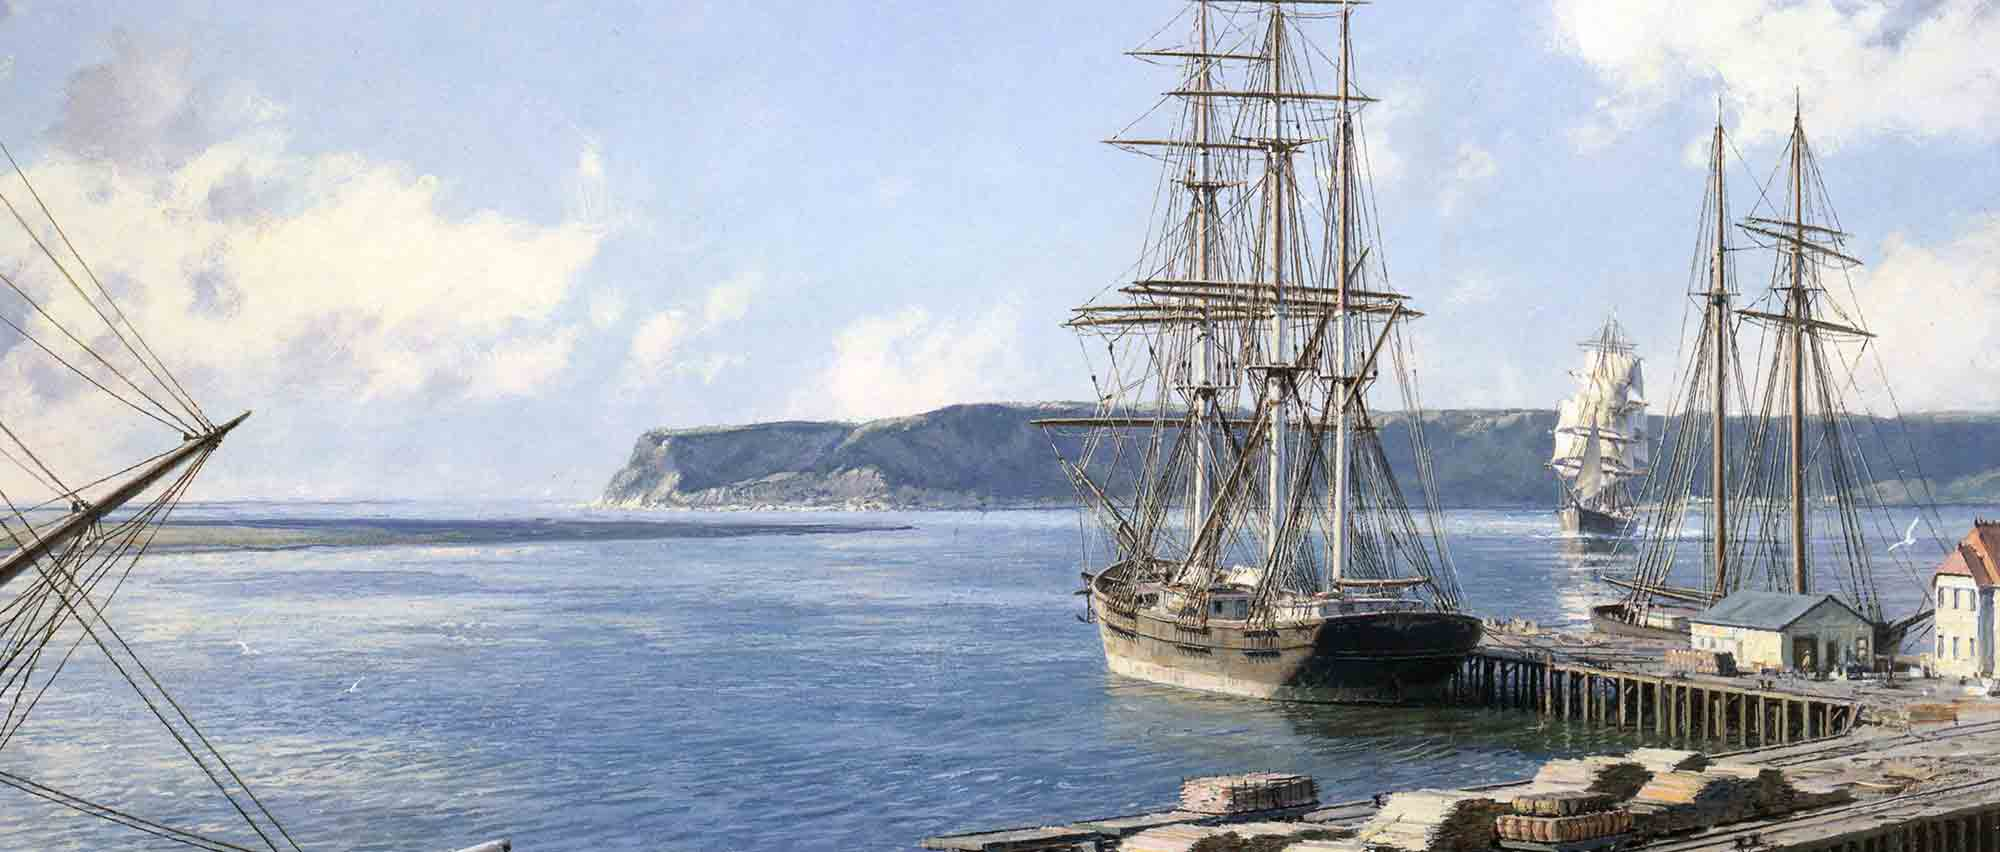 Maritime Art of John Stobart